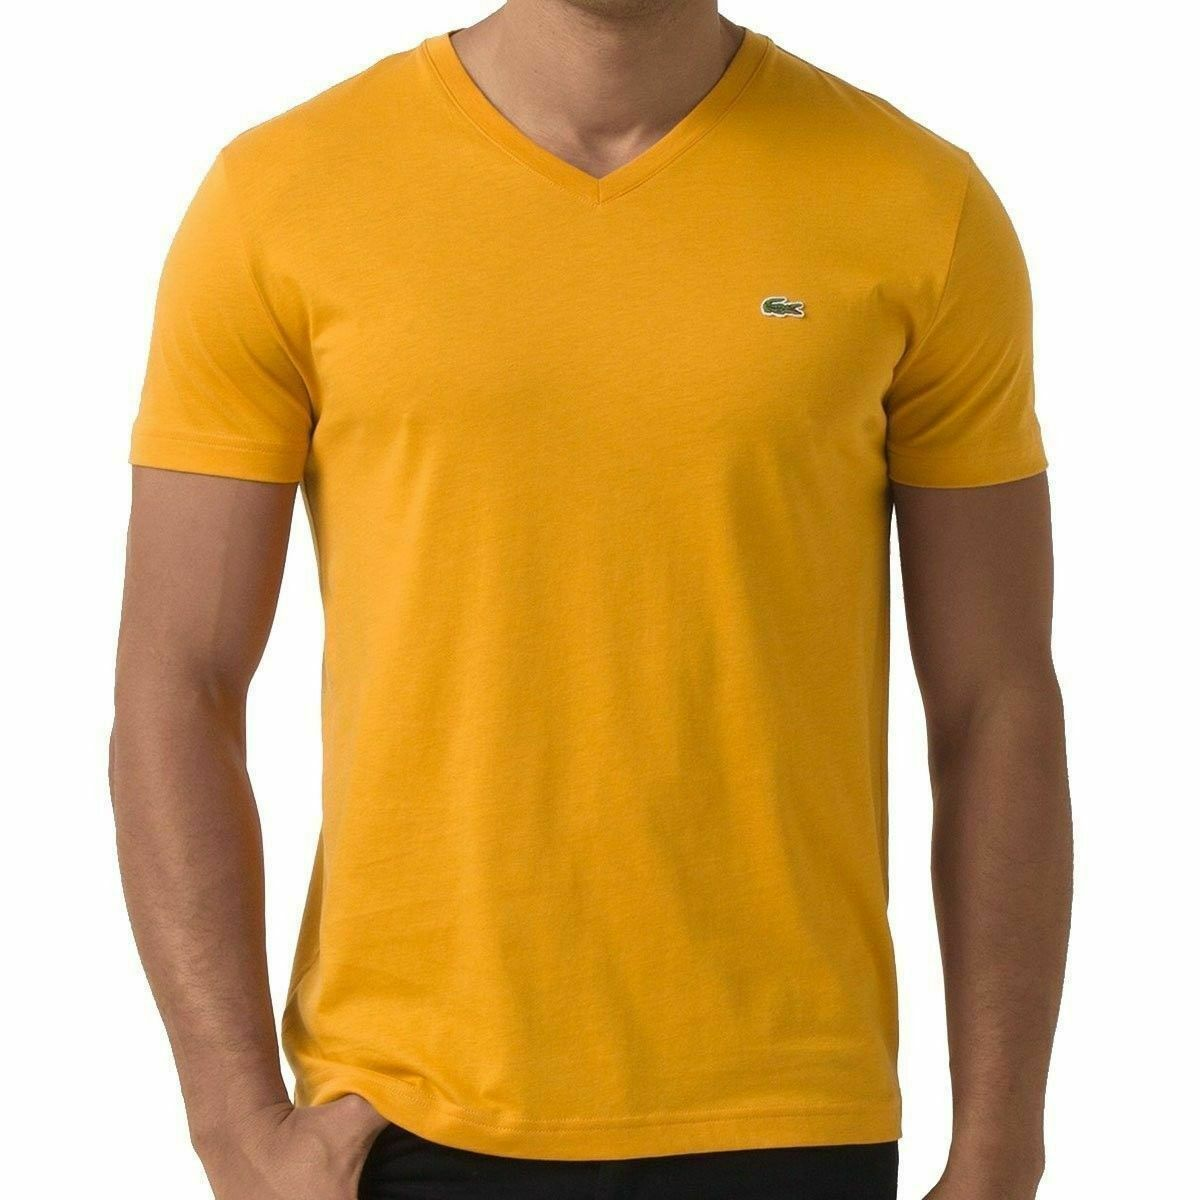 Lacoste Men's Premium  Athletic Cotton V-Neck Shirt T-Shirt Curcuma